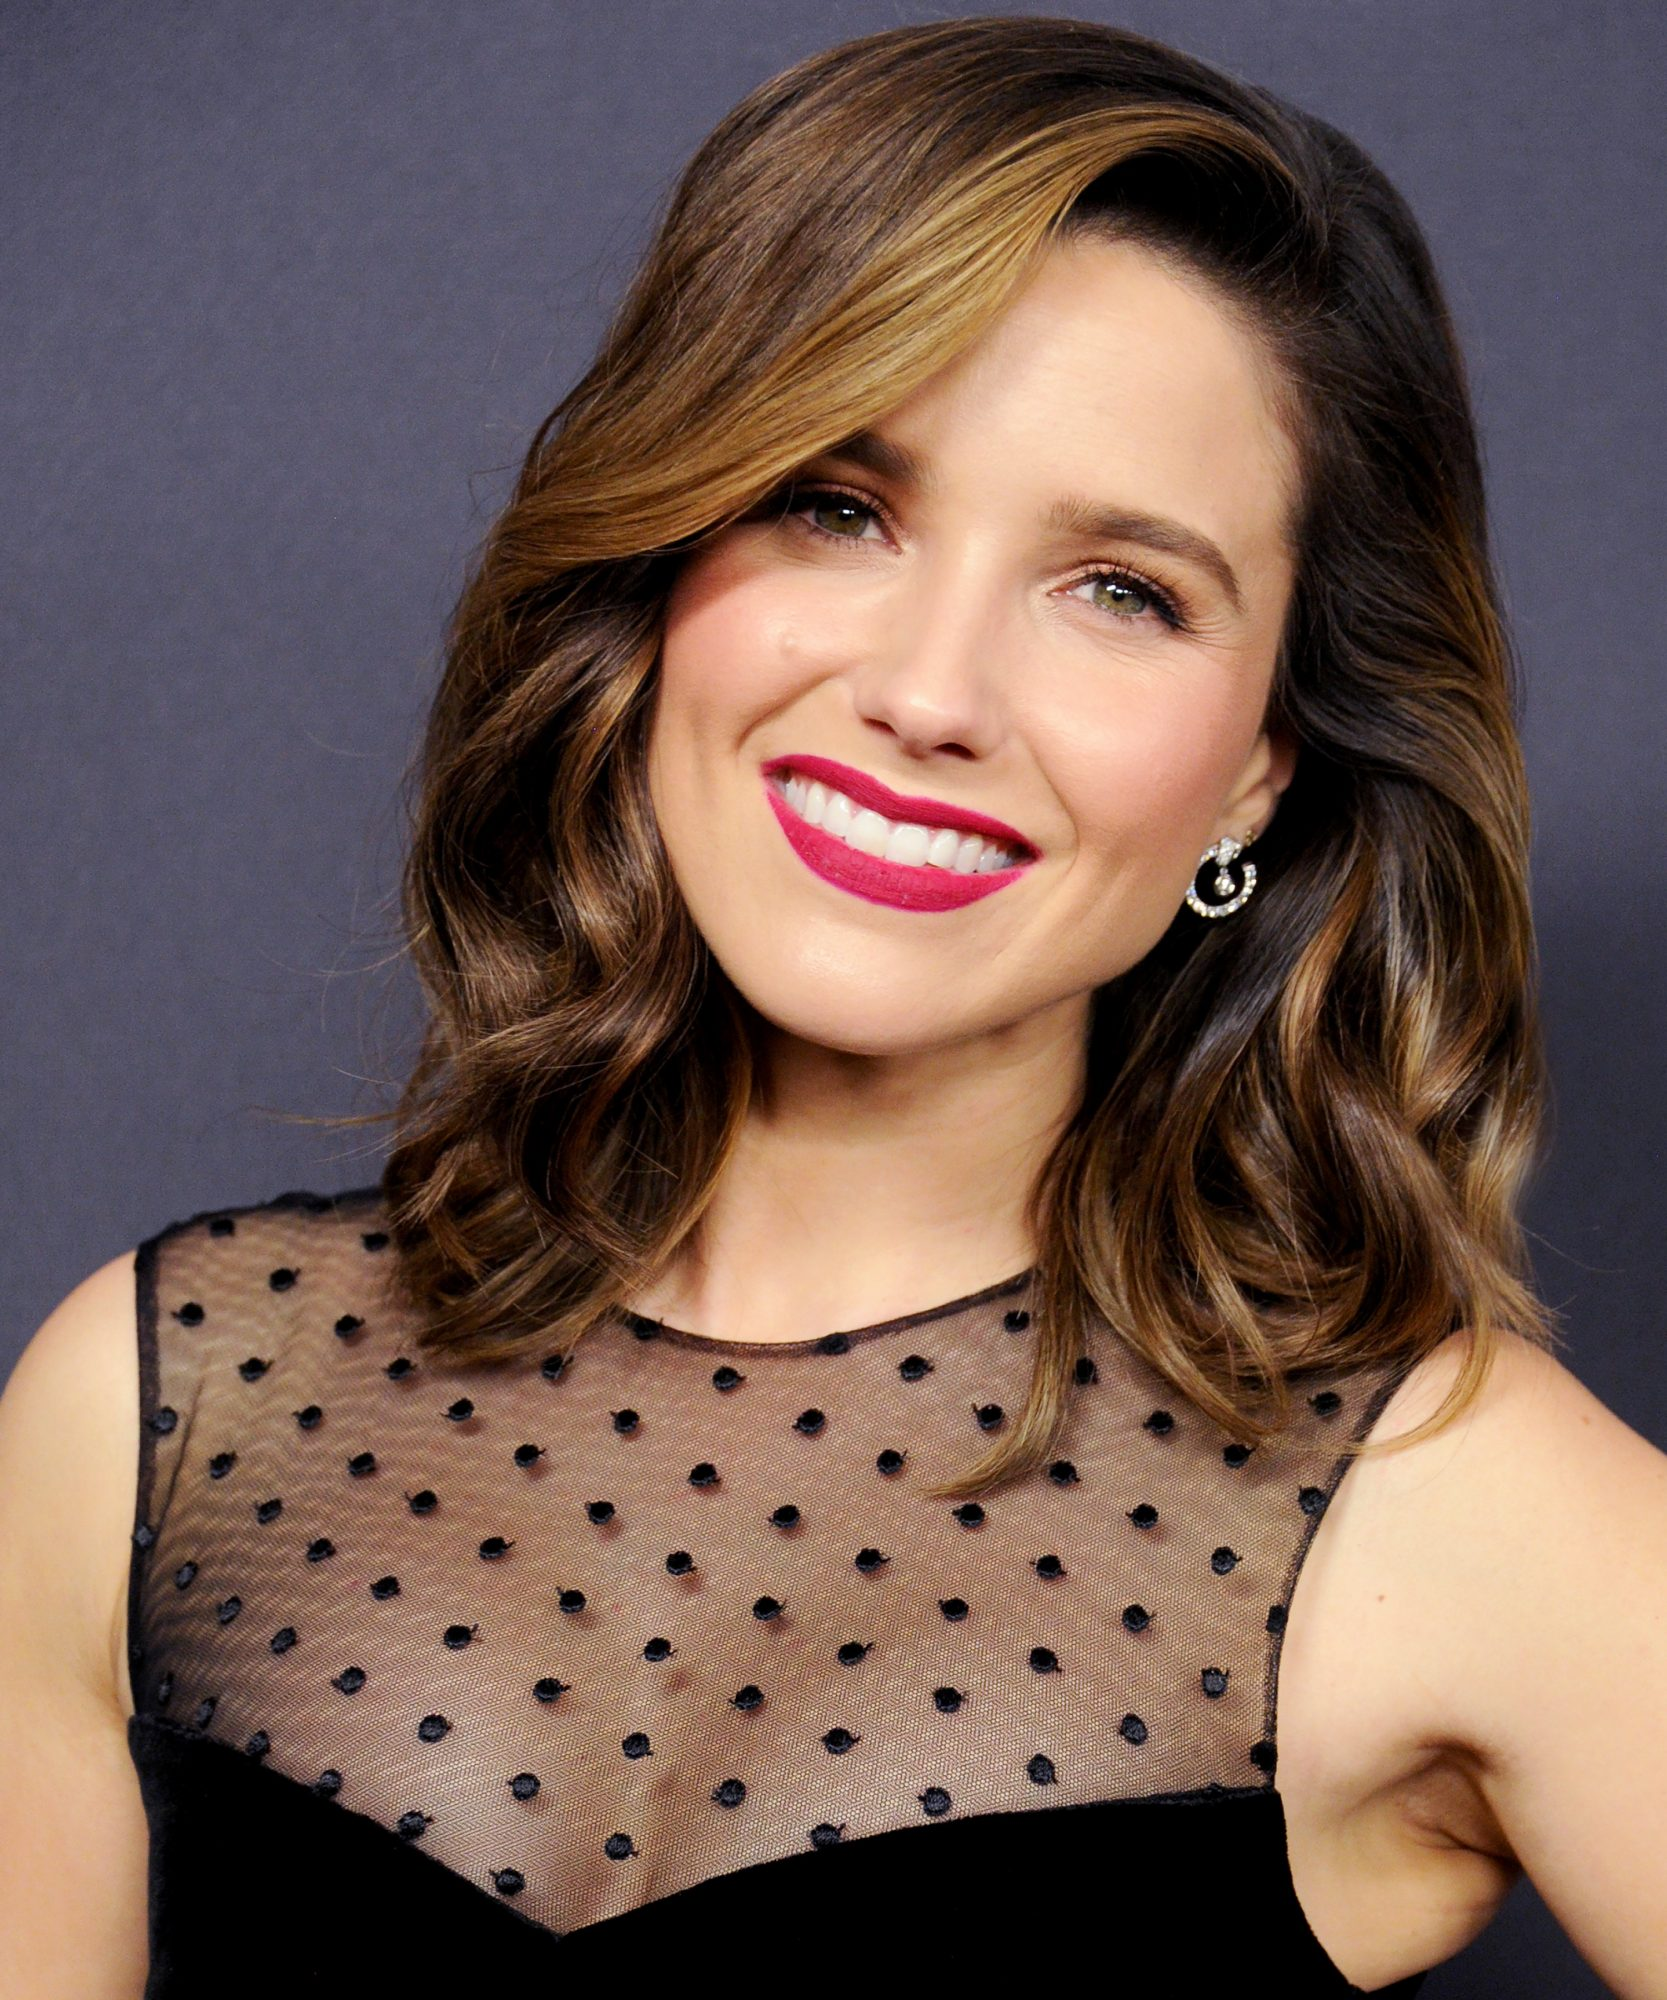 Sophia Bush's Top Tips for Maintaining Balance When Life Gets Nuts